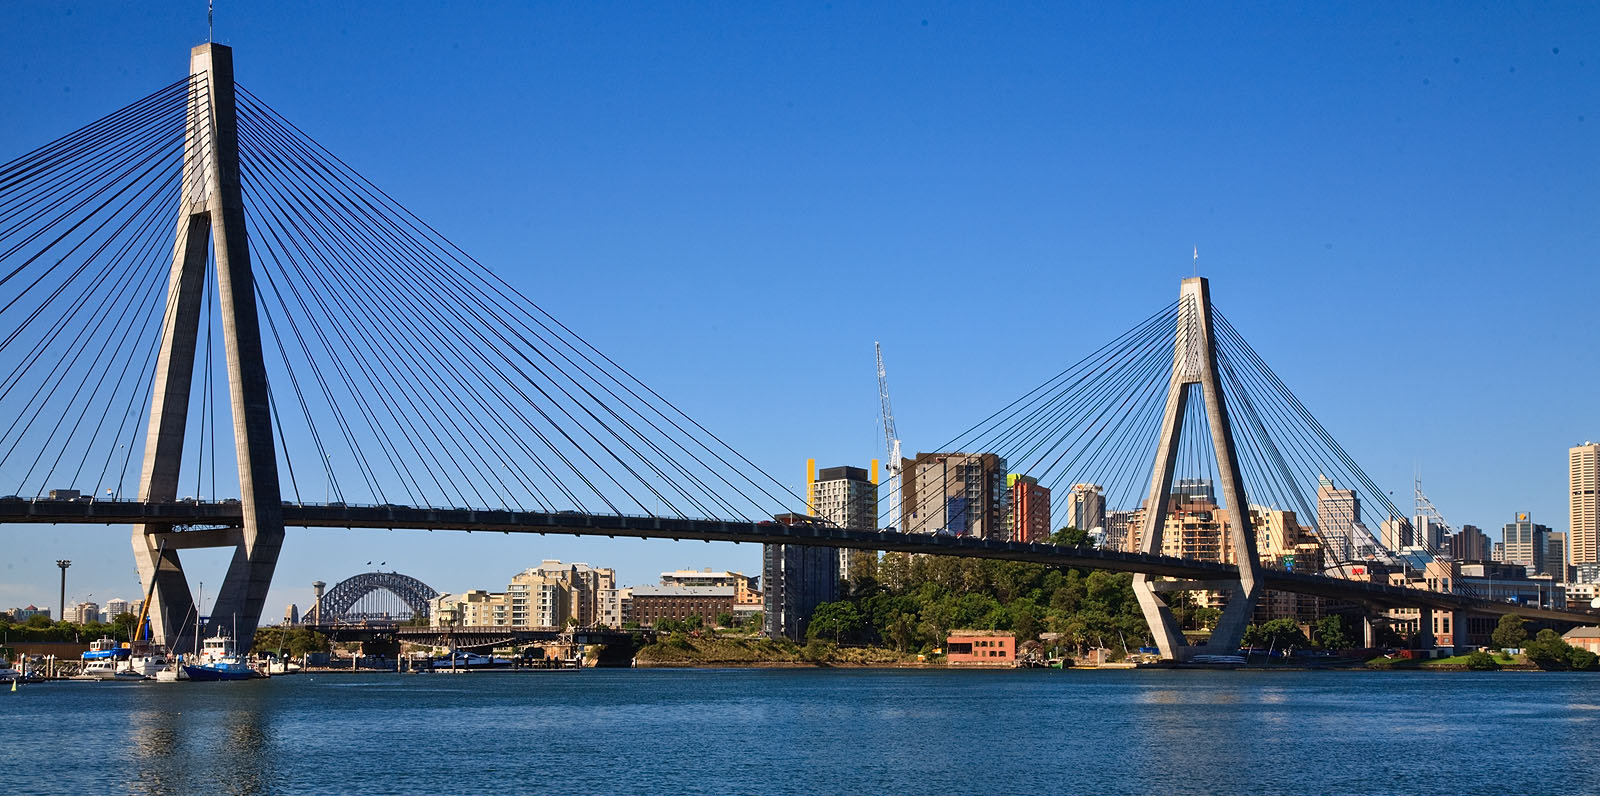 Anzac Bridge - Wikipedia